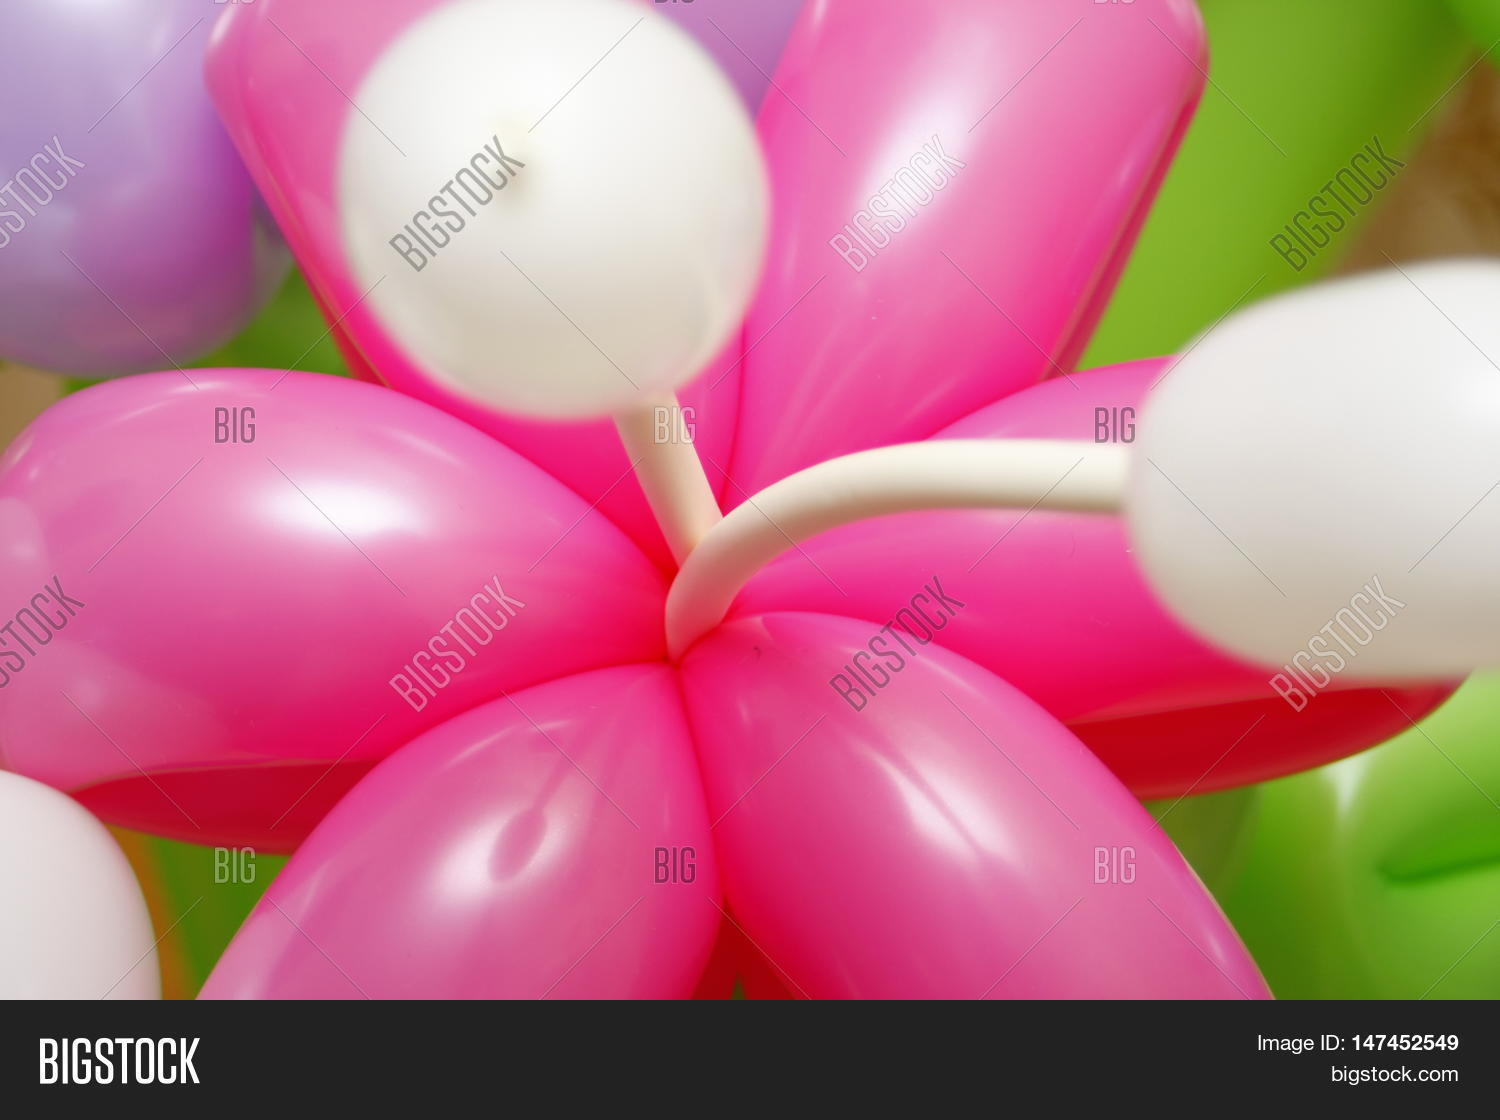 Balloon Flowers Latex Image Photo Free Trial Bigstock